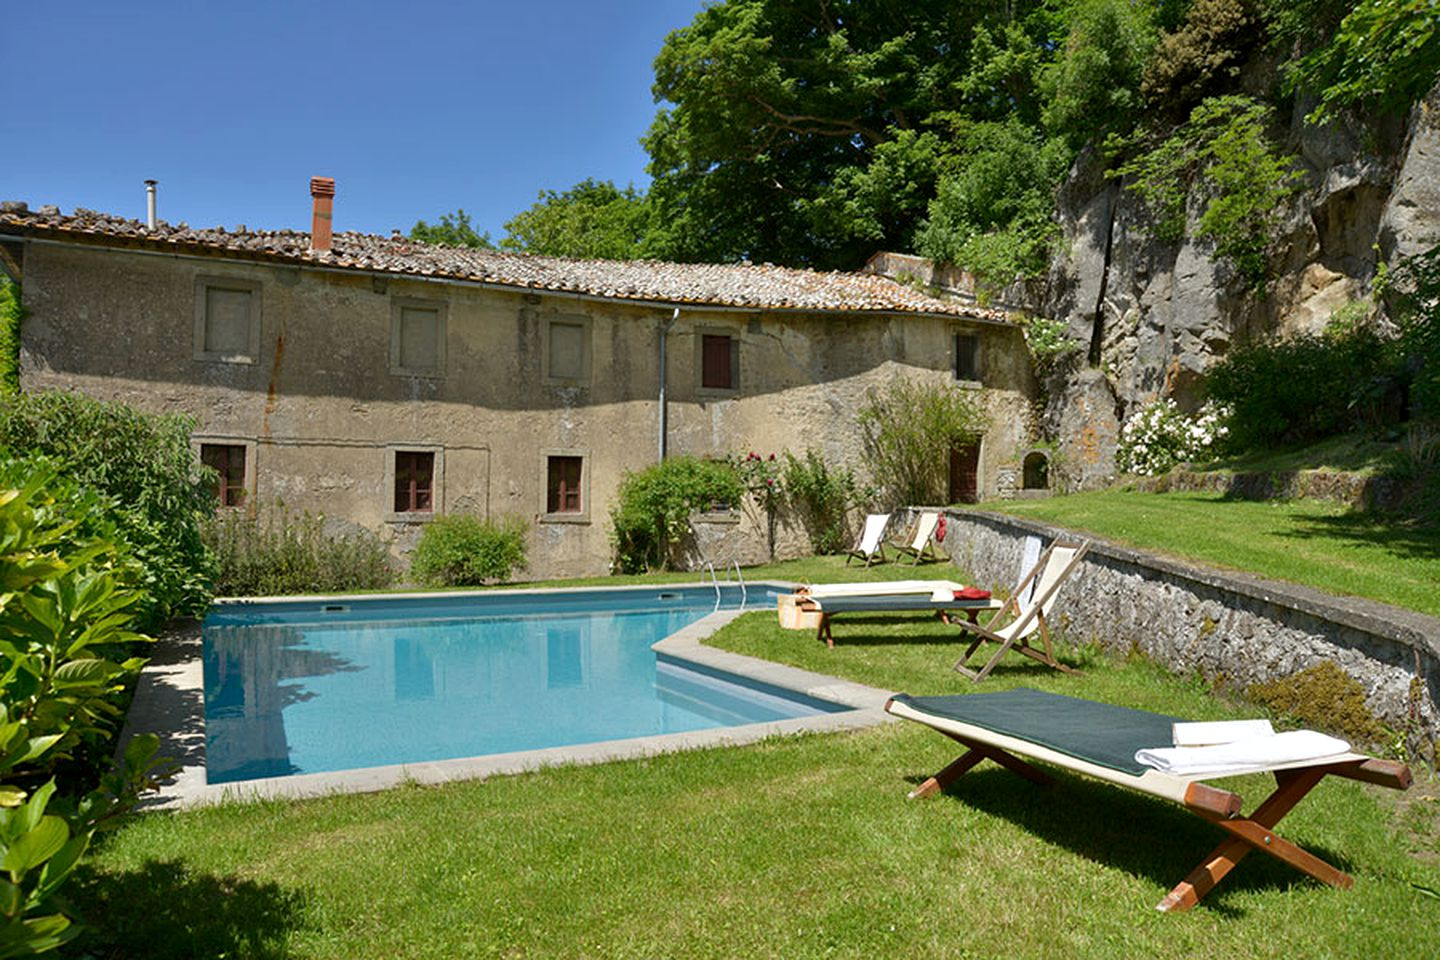 Villas Near Siena Italy beautiful, bright villa for families near siena in tuscany, italy